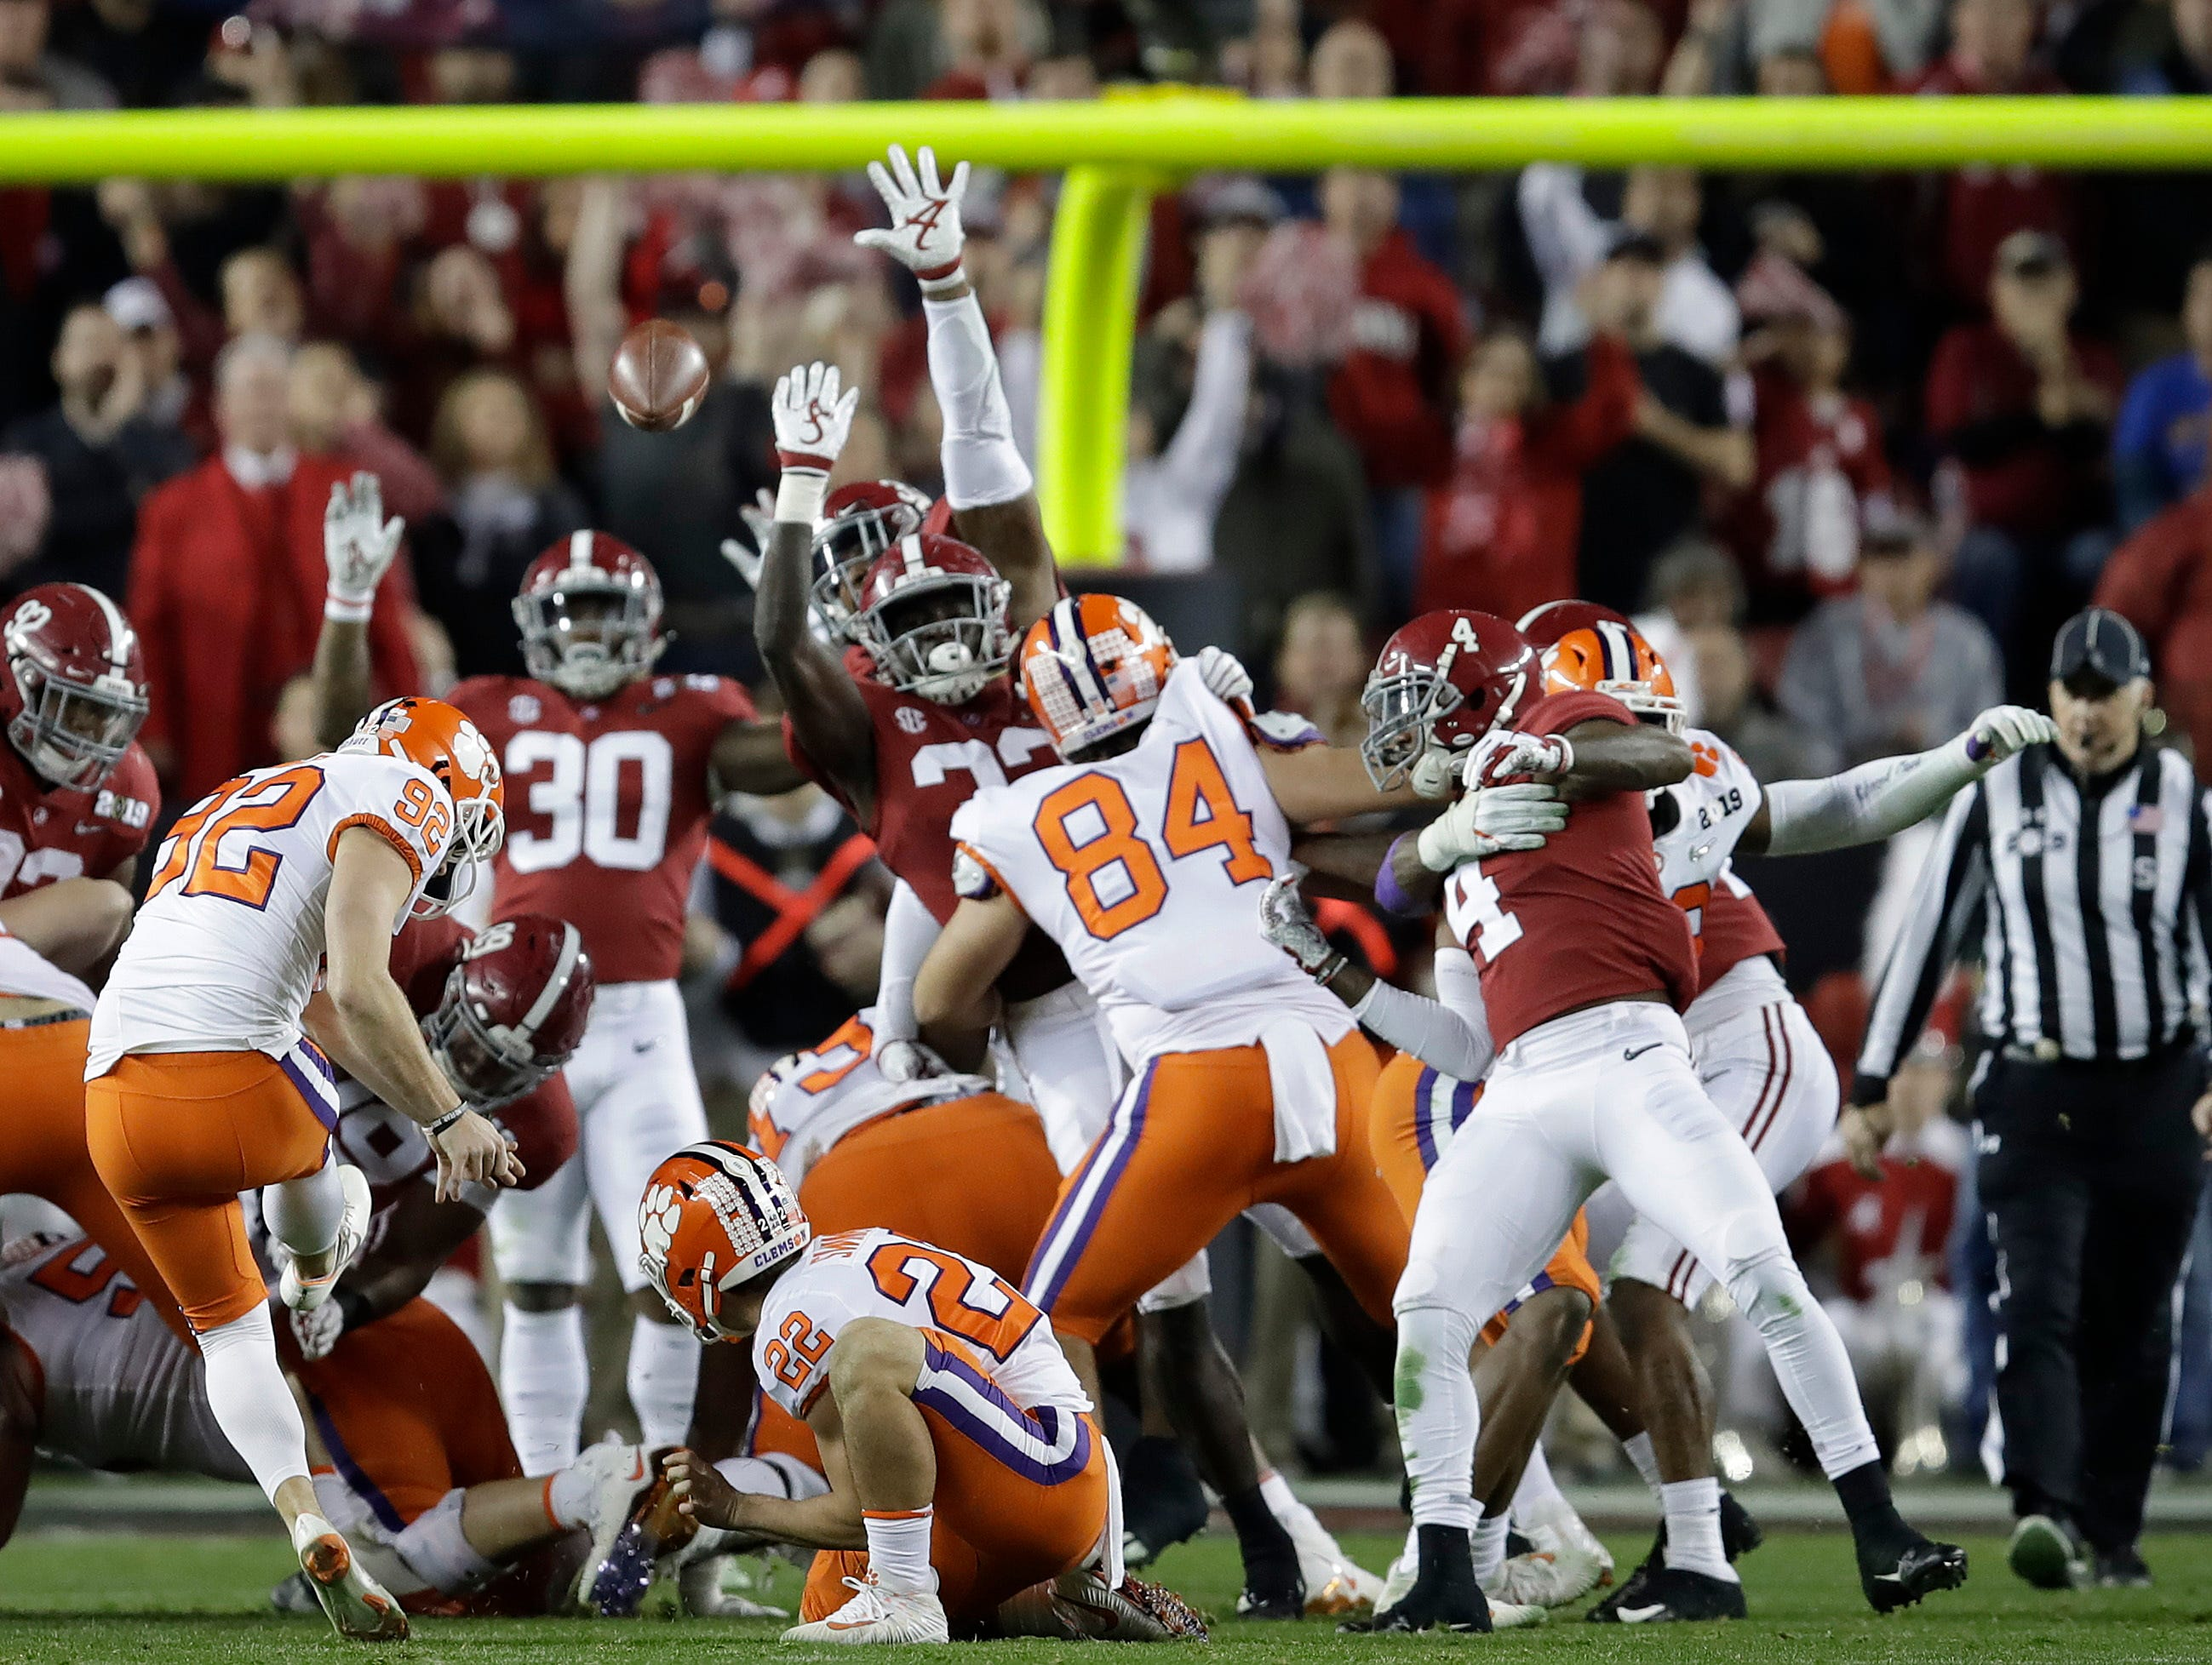 Clemson's Greg Huegel kicks a field goal during the first half of the NCAA college football playoff championship game against Alabama, Monday, Jan. 7, 2019, in Santa Clara, Calif. (AP Photo/Ben Margot)